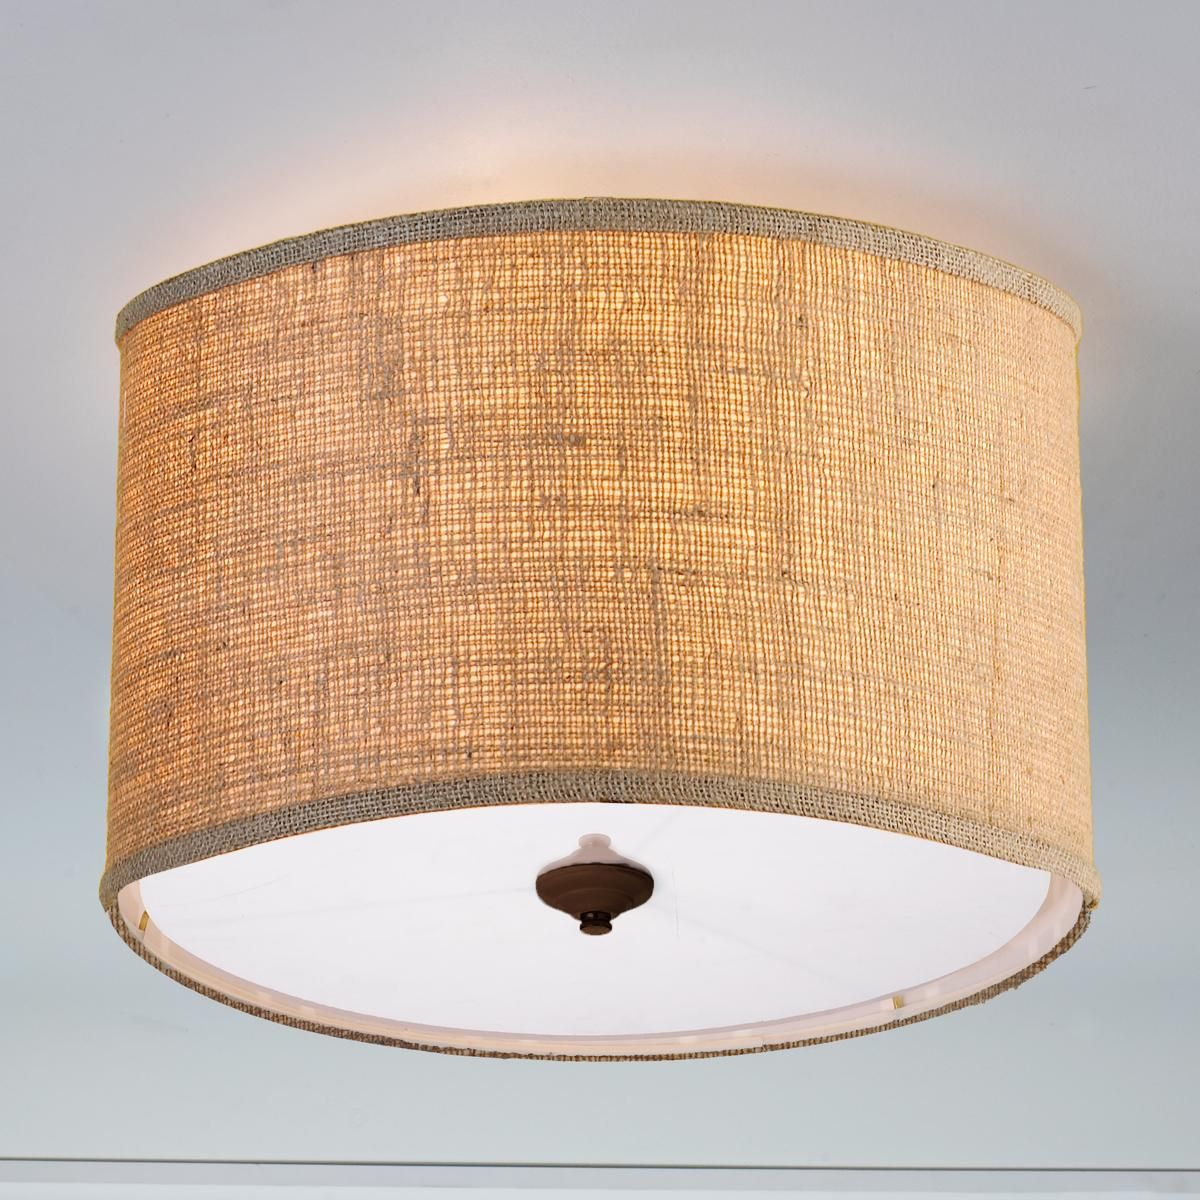 Burlap Drum Shade Ceiling Light | Drum shade, Ceiling and Drums